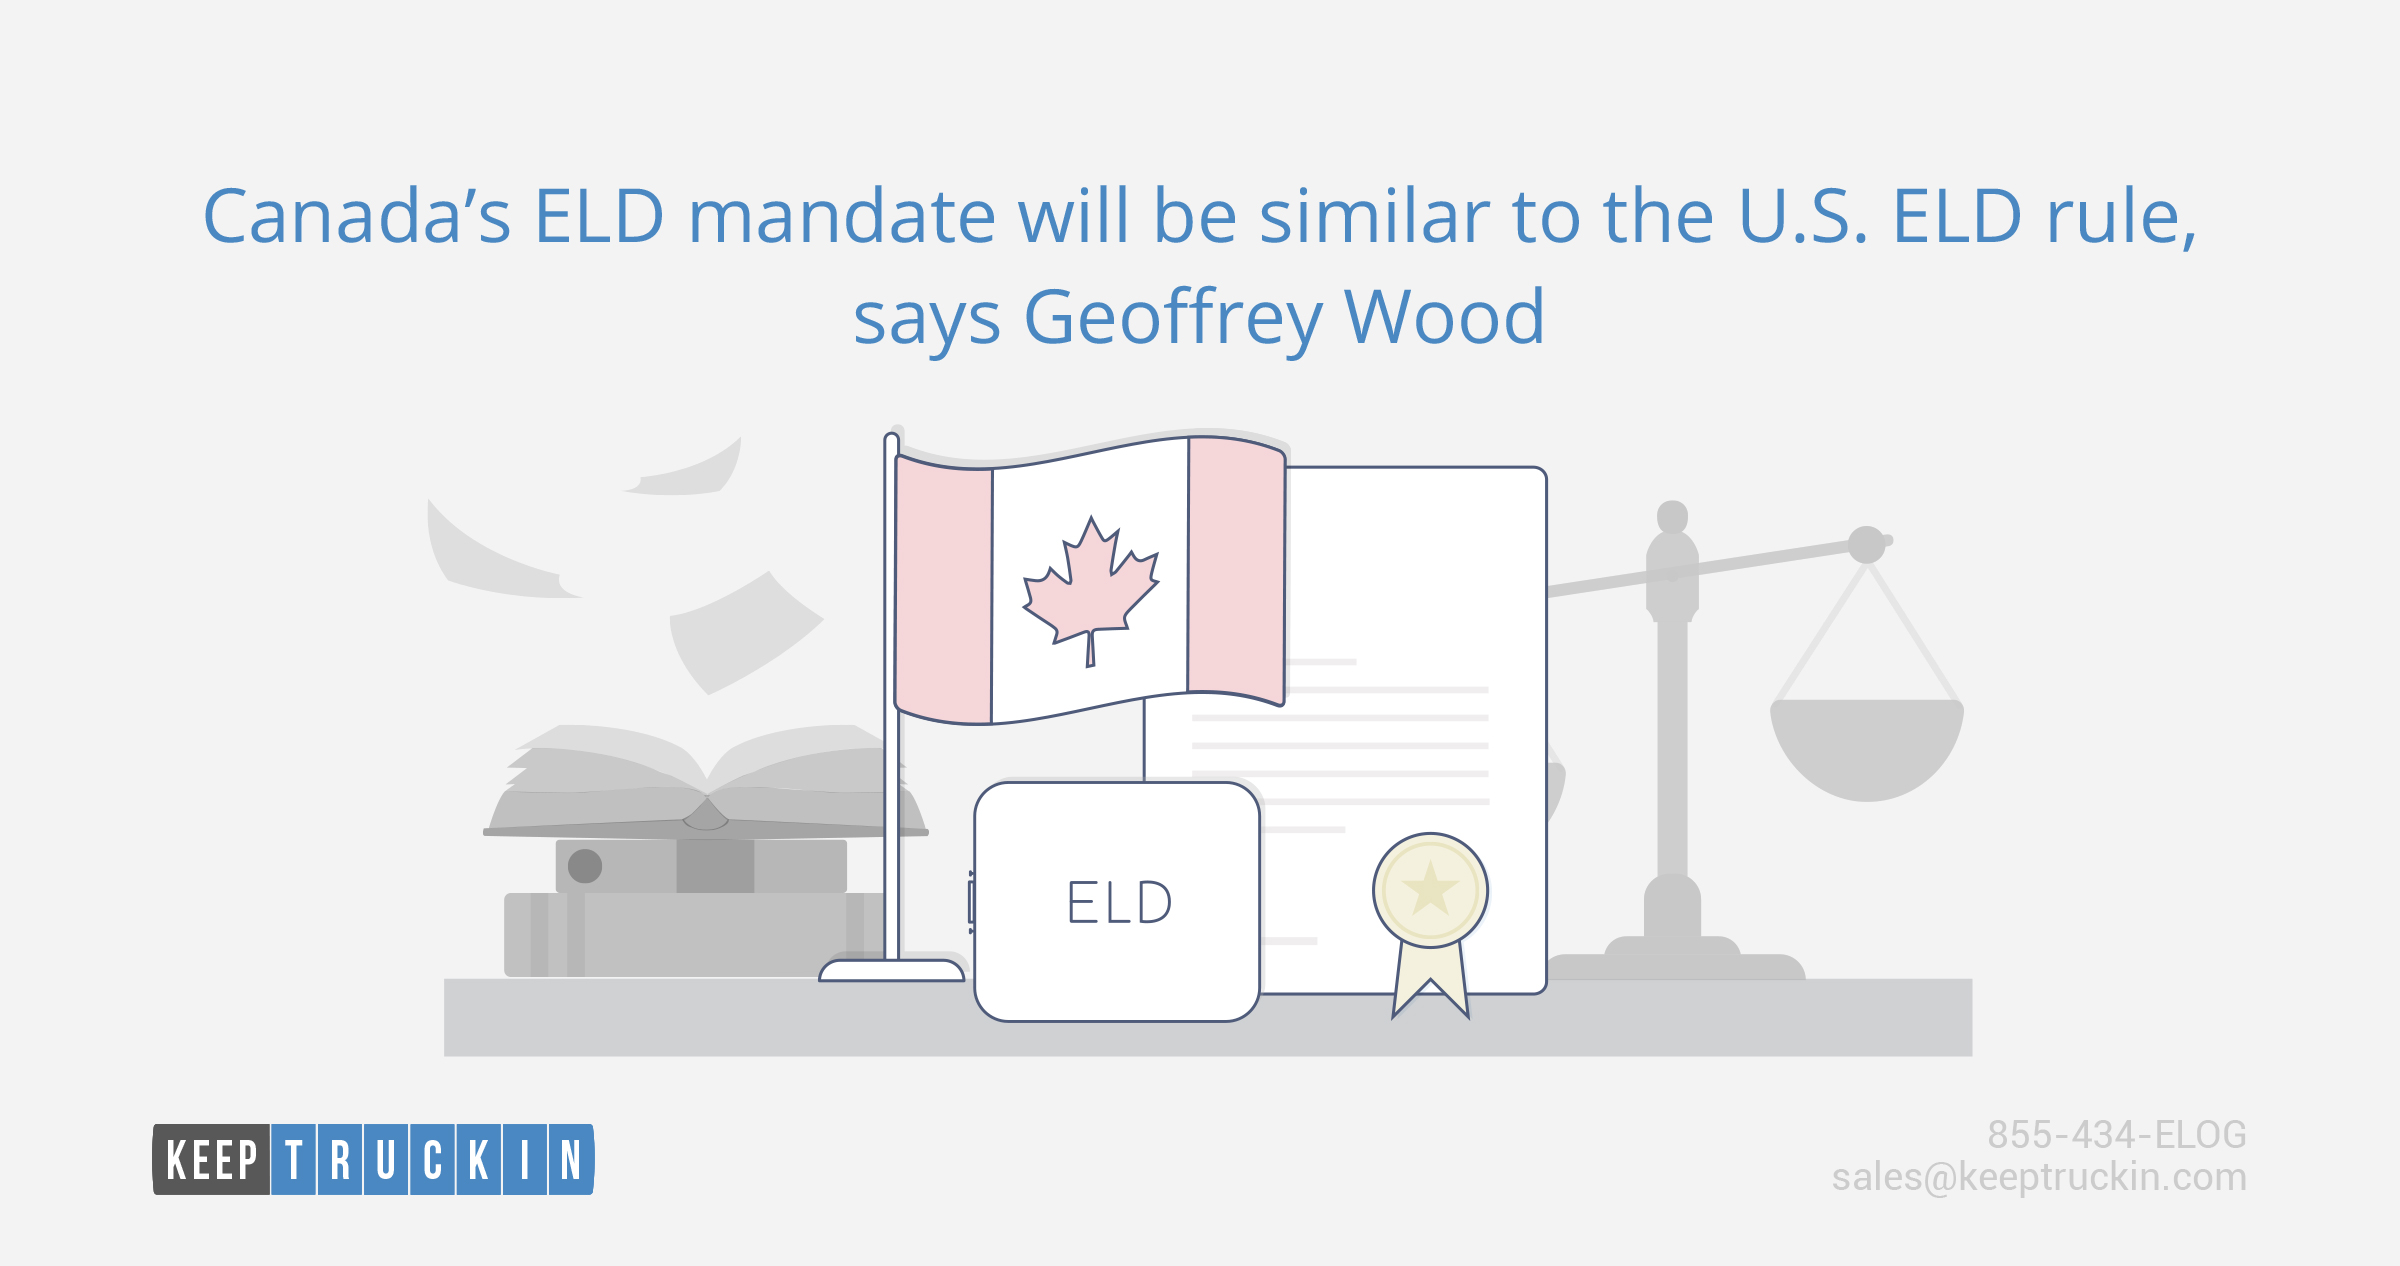 Canada's ELD mandate will be similar to the U.S. ELD rule, says Geoffrey Wood